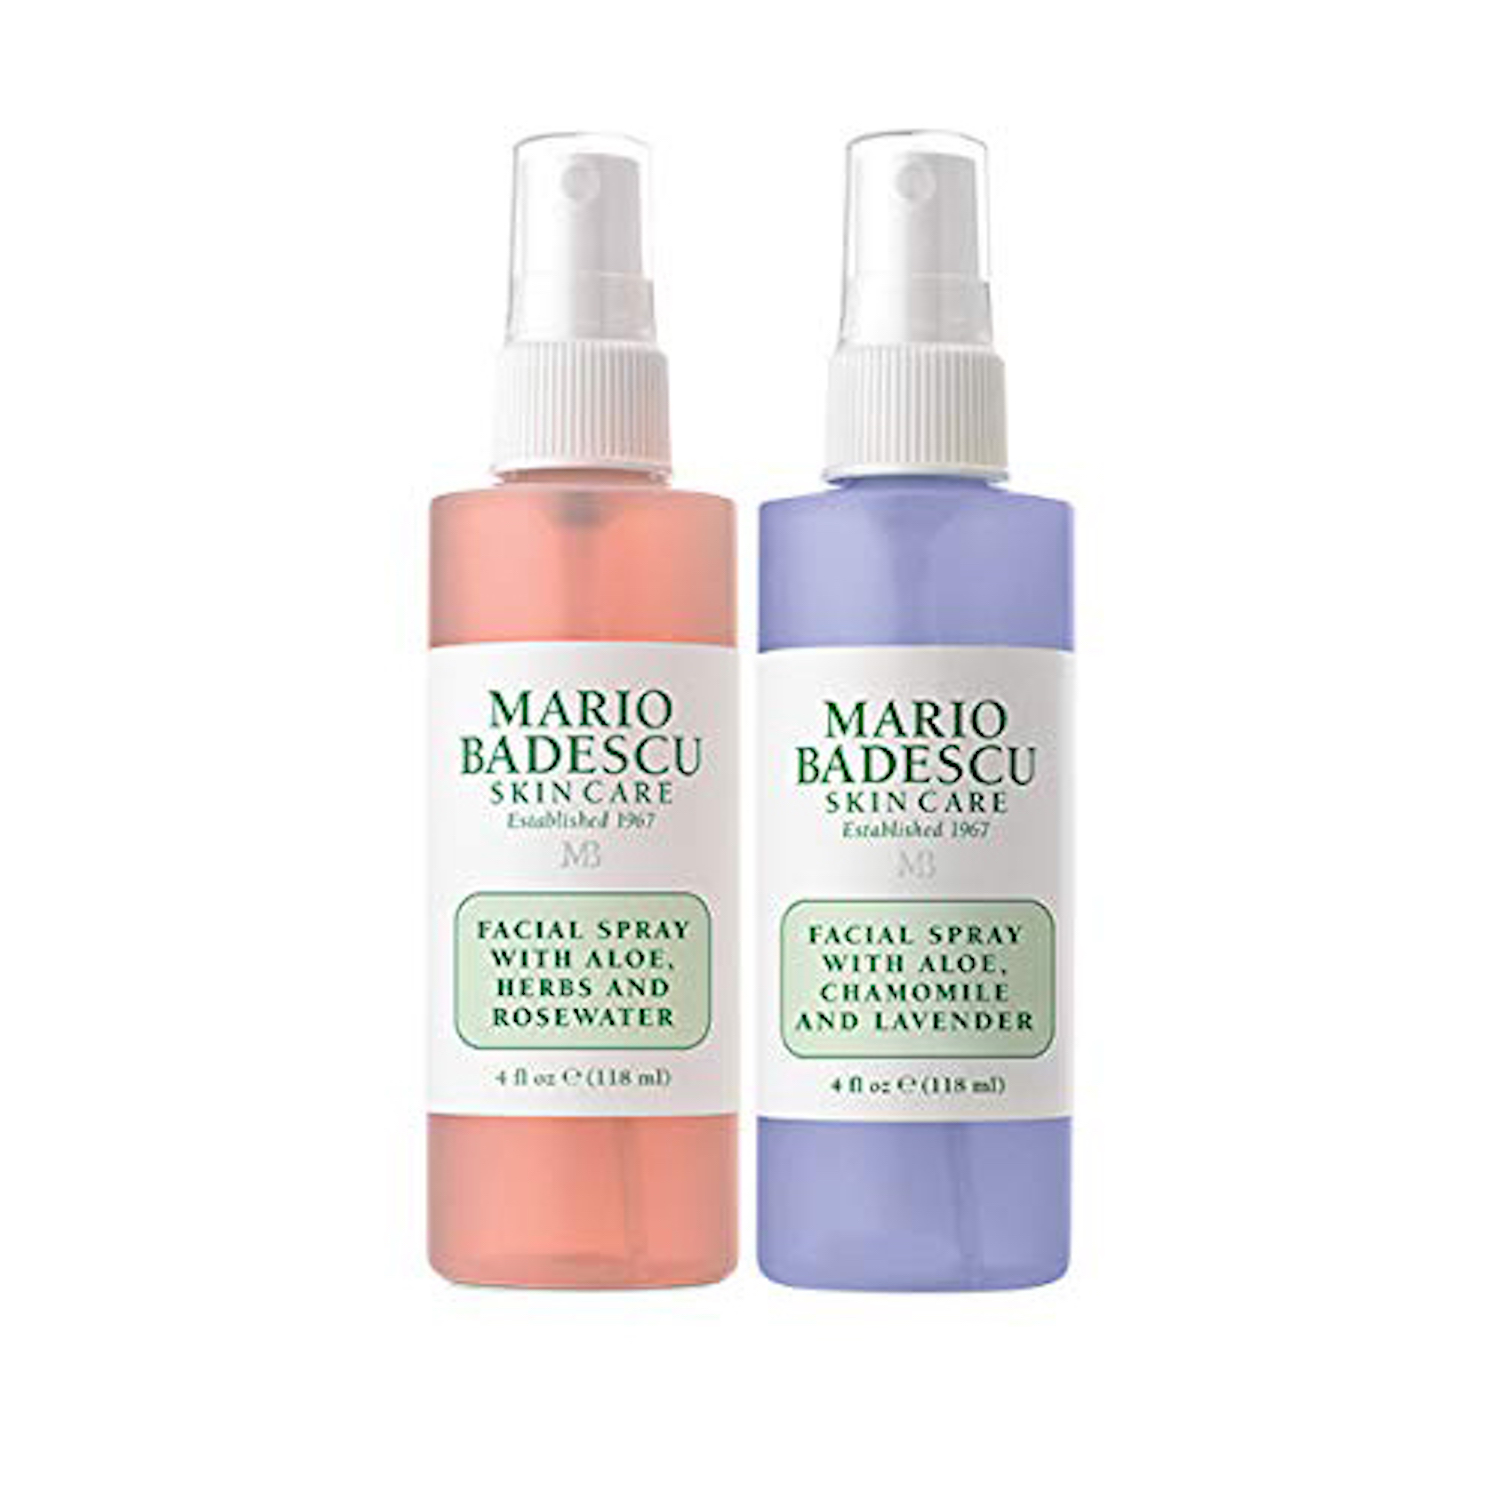 Mario Badescu Facial Spray Rosewater and Lavender Duo